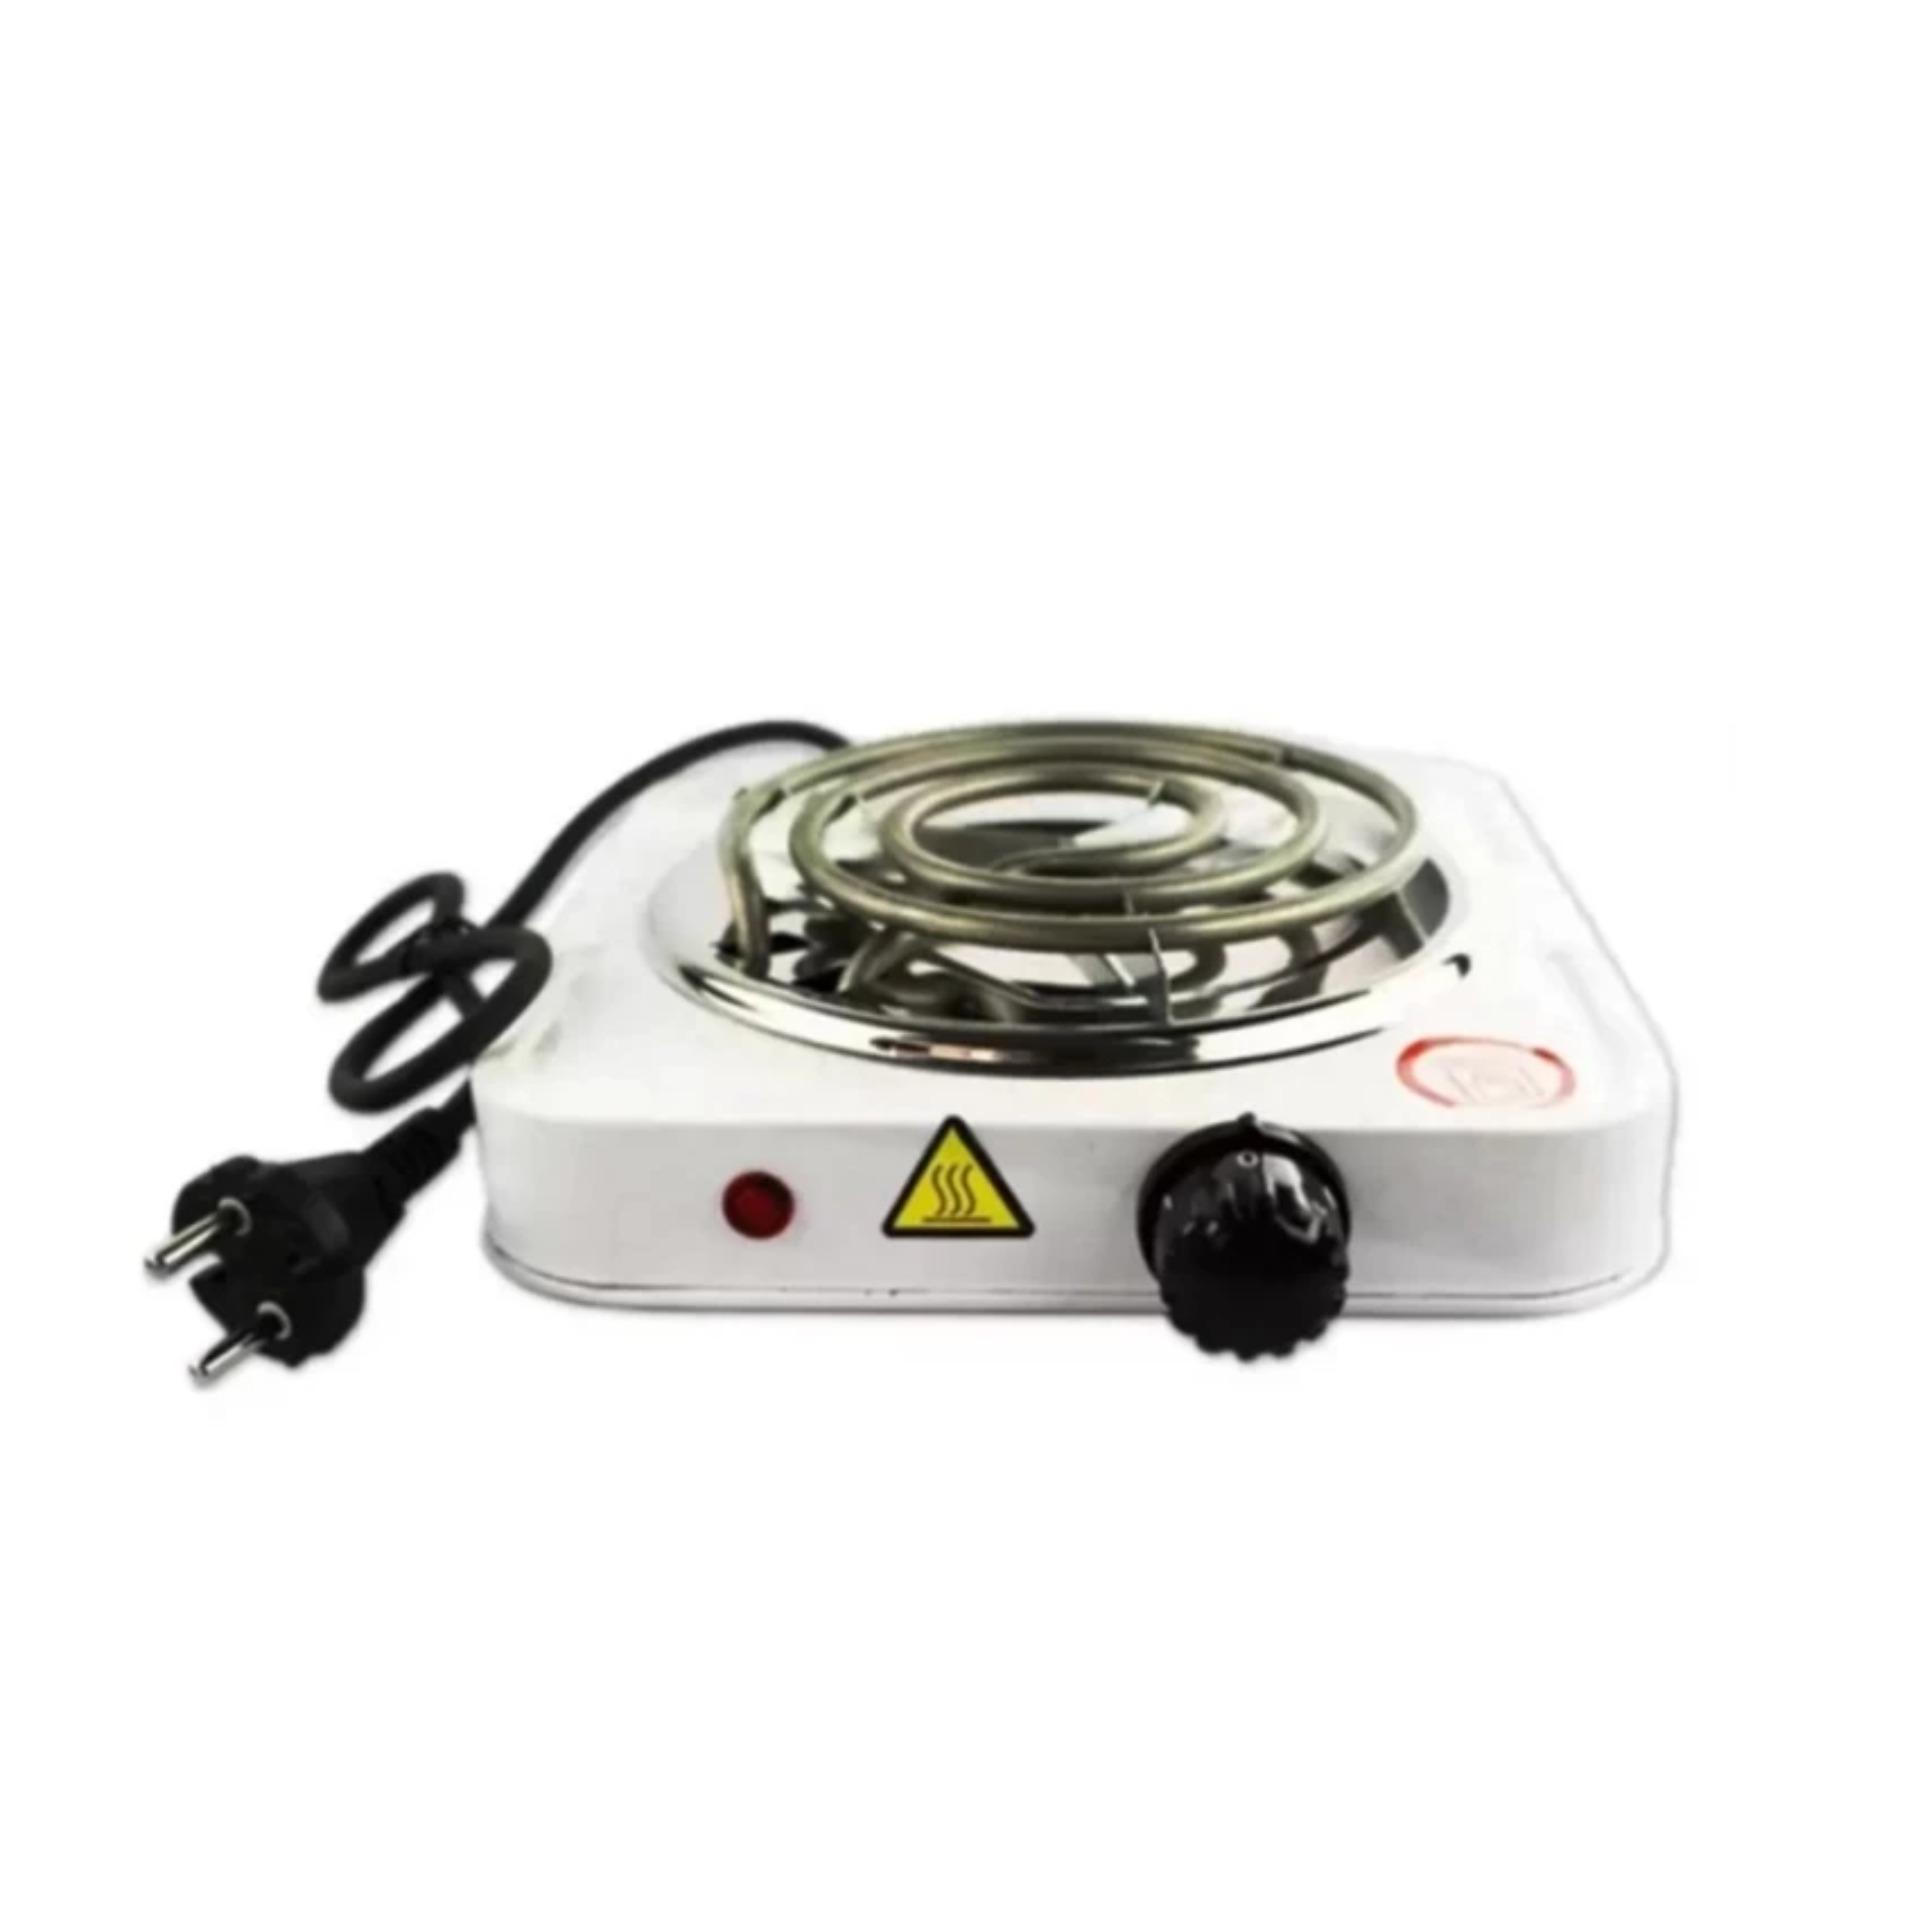 ... Portable Electric Stove Single Burner 1000W Hot Plate JX1010B (White)  ...